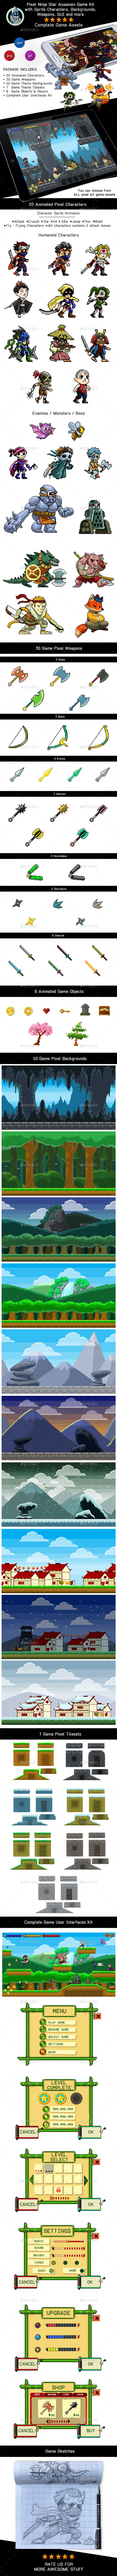 Pixel Ninja Star Assassin Game Kit - Sprites, Backgrounds and Weapons - Game Kits Game Assets